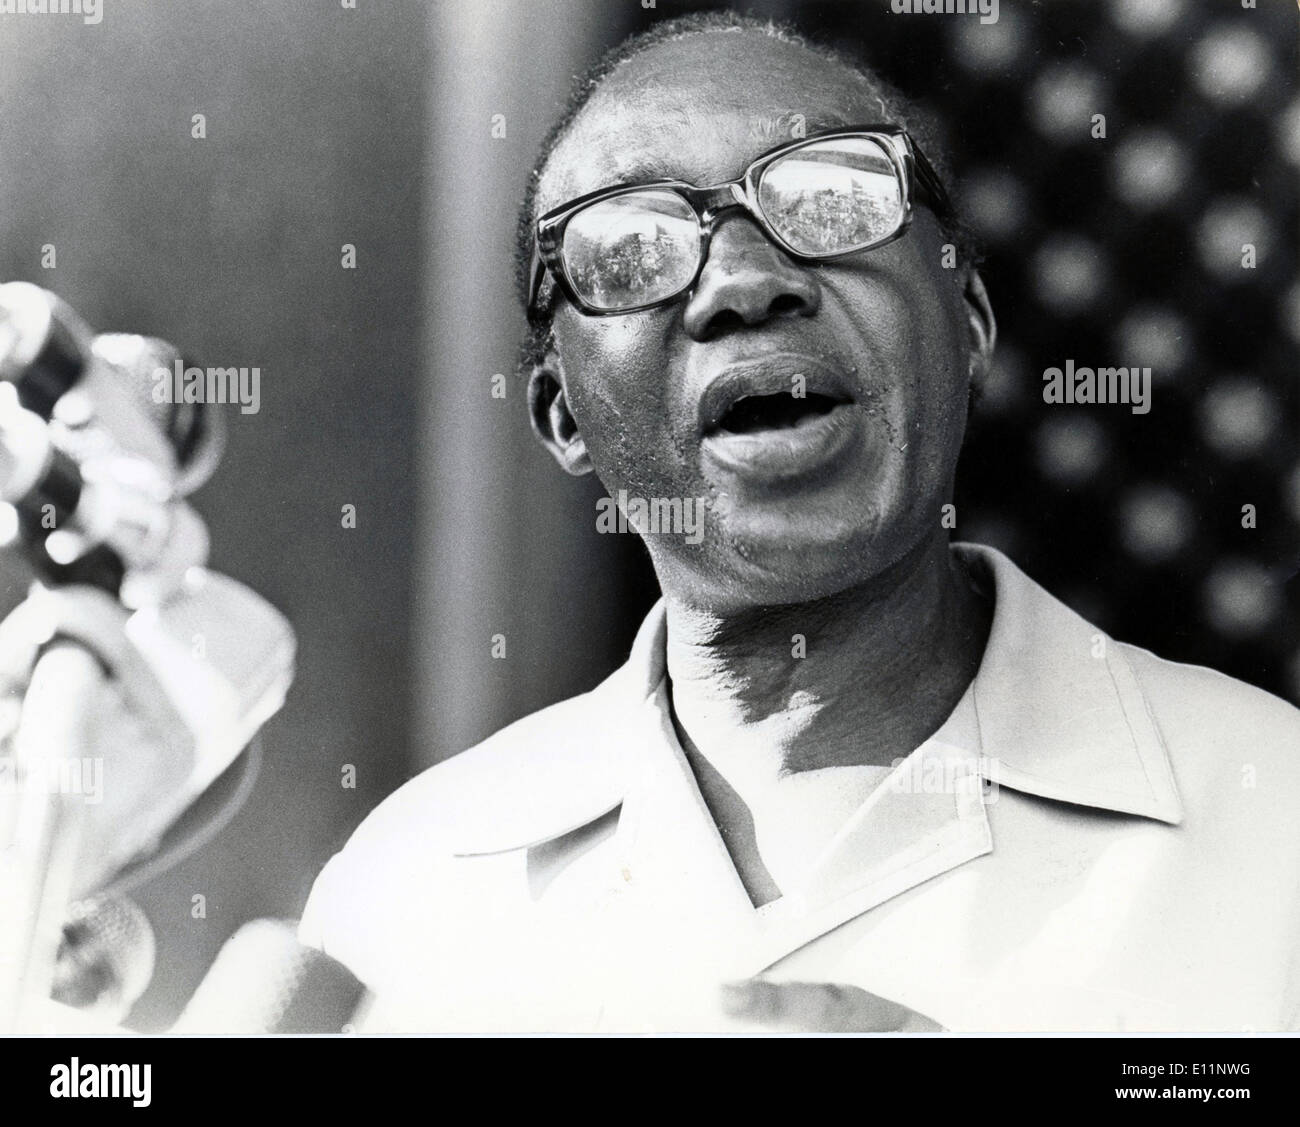 Apr. 20, 1979 - Nairobi, Kenya - The new President of Uganda, YUSUF LULE addresses citizens outside the parliament buildings after being sworn-in as Head of State. - Stock Image